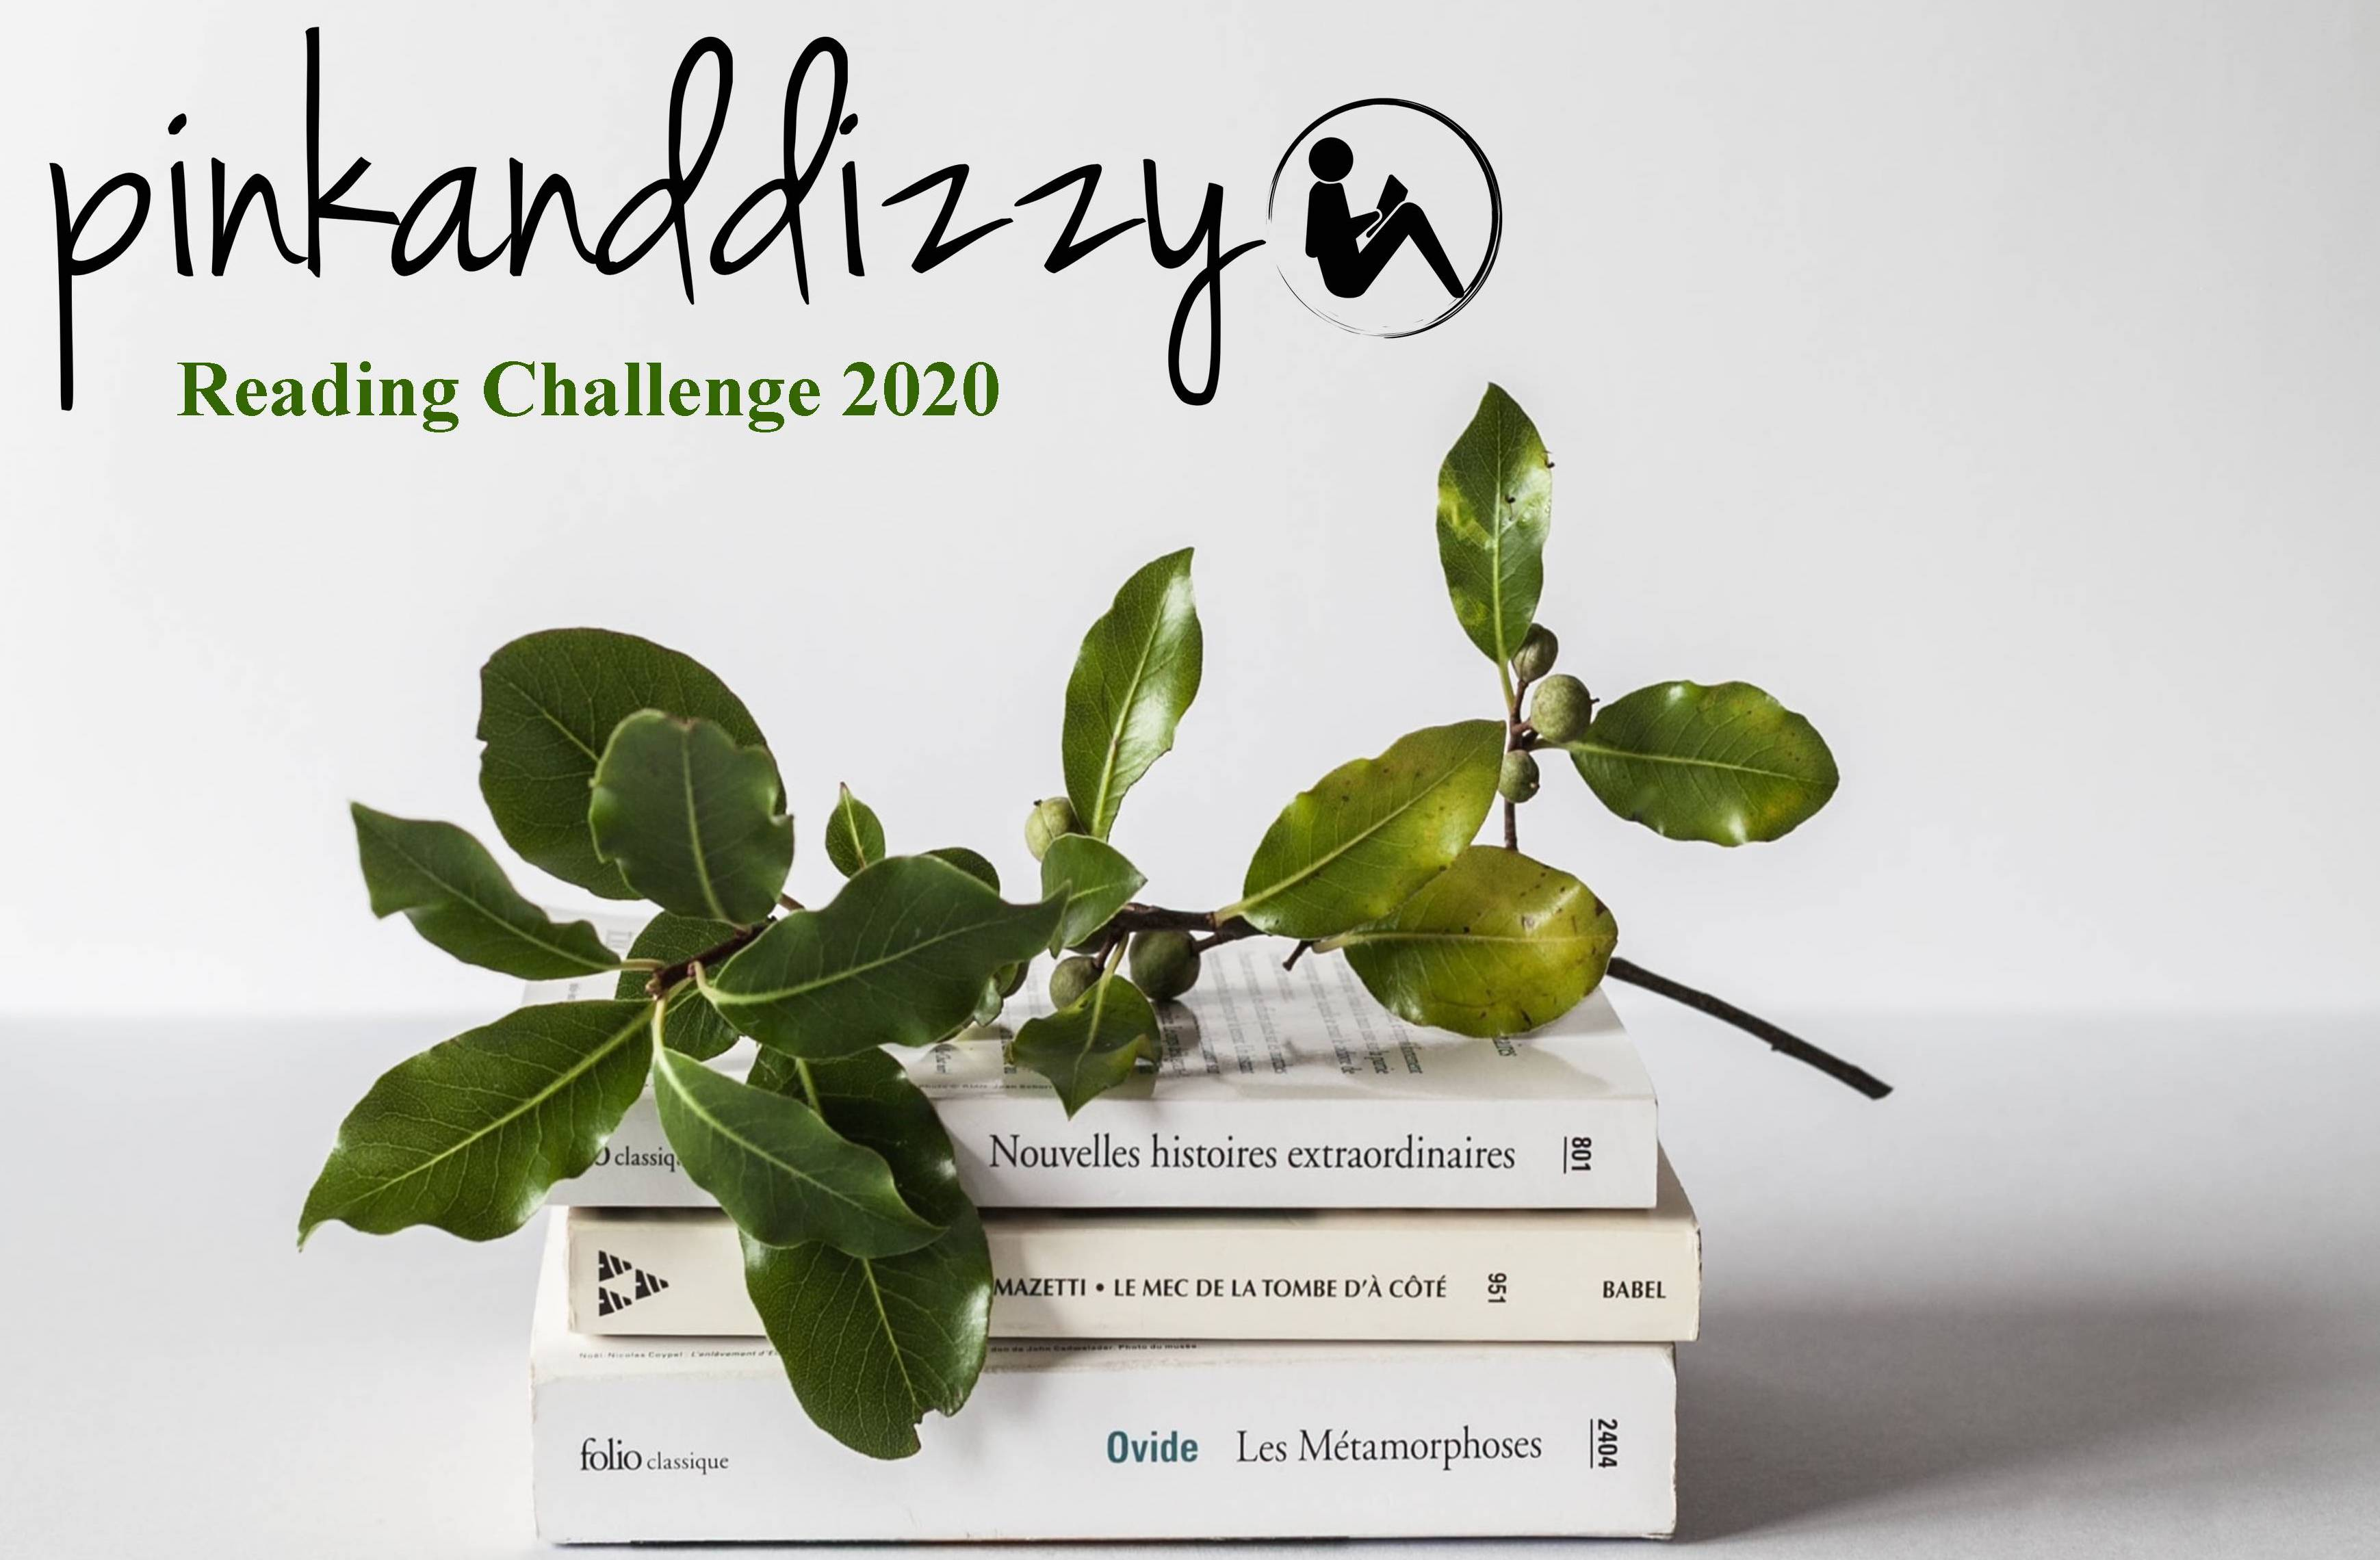 Reading challenge 2020 banner